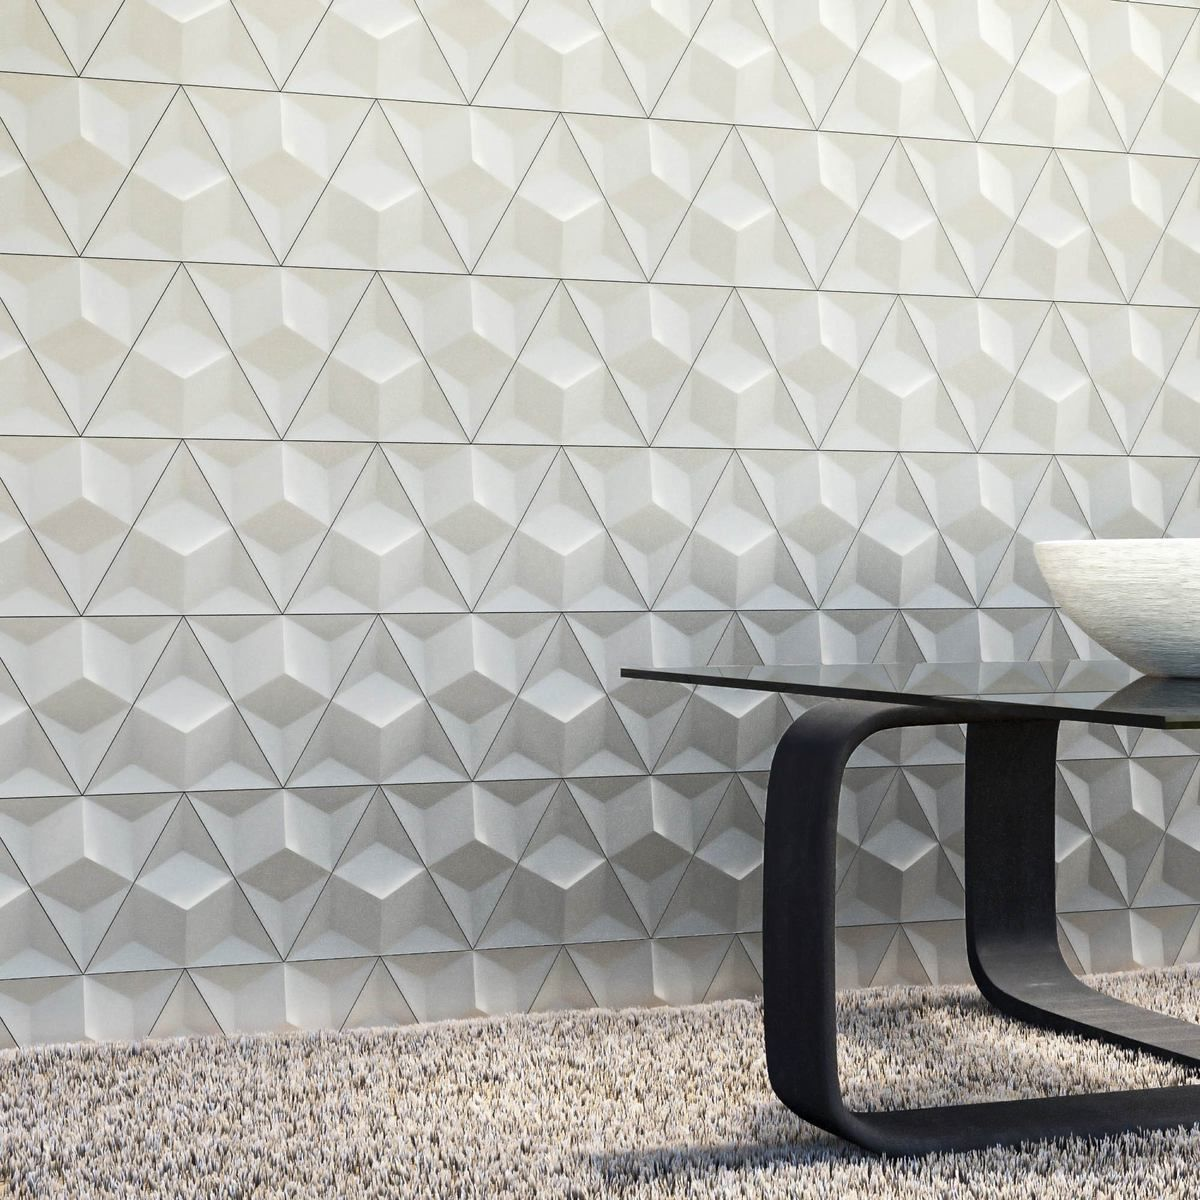 Concrete 3d Wall Tiles For For Interior And Exterior Walls Our Tiles Are Designed For Feature Or Accent Walls Wall Tiles T In 2020 3d Wall Tiles Tiles Concrete Tiles